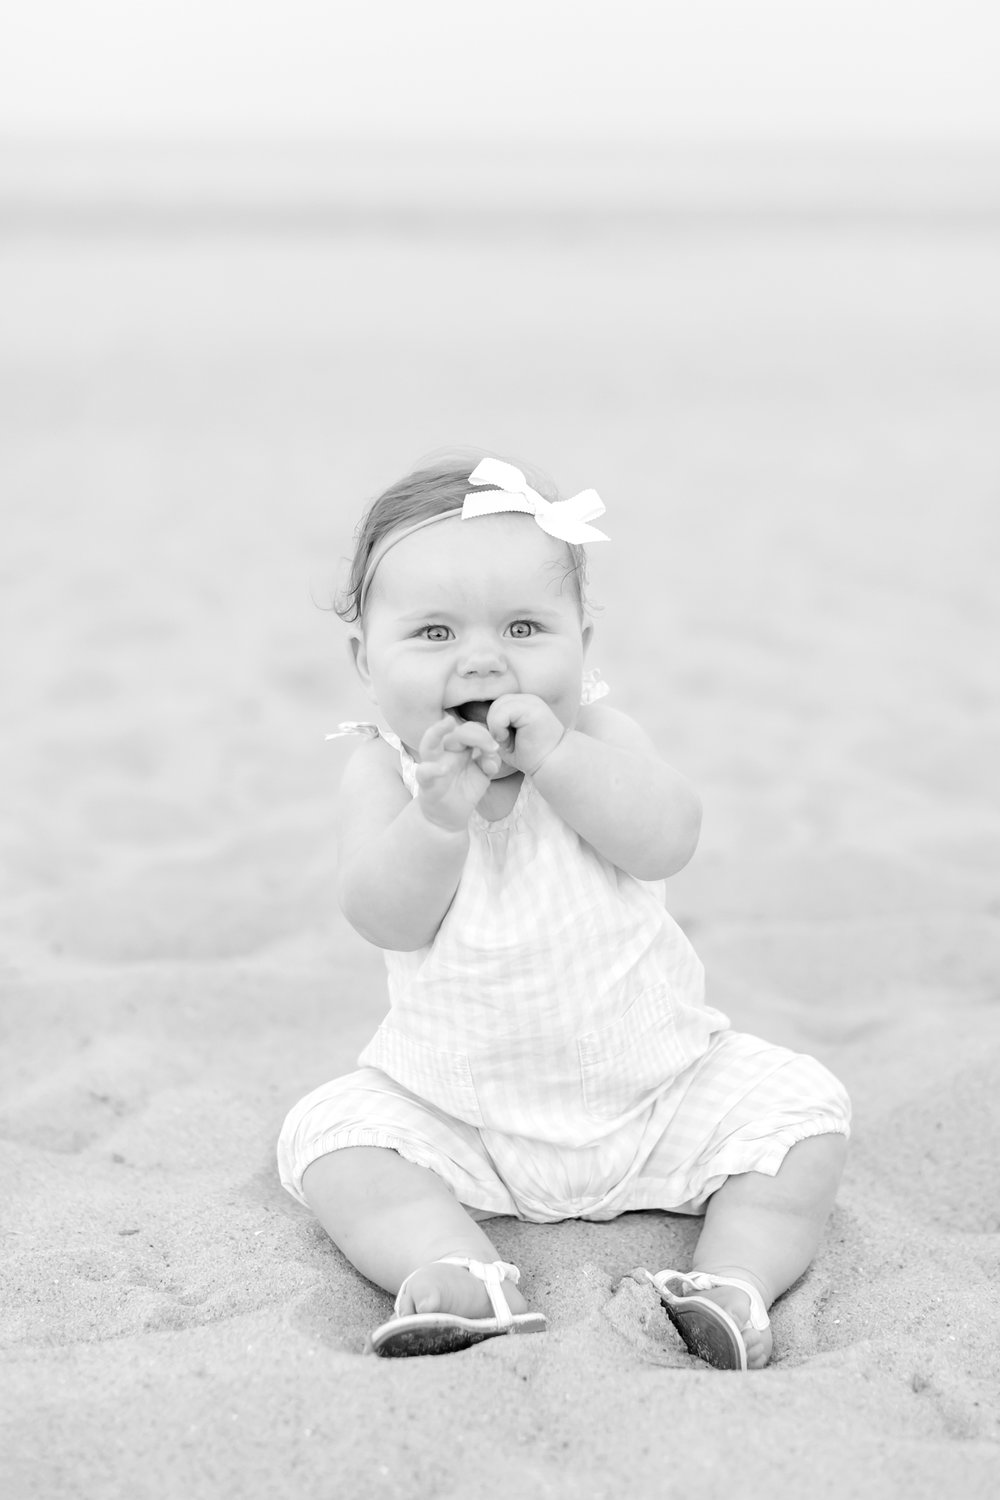 Rehoboth Beach Vacay-137_rehoboth-beach-family-vacation-beach-baby-anna-grace-photography-photo.jpg